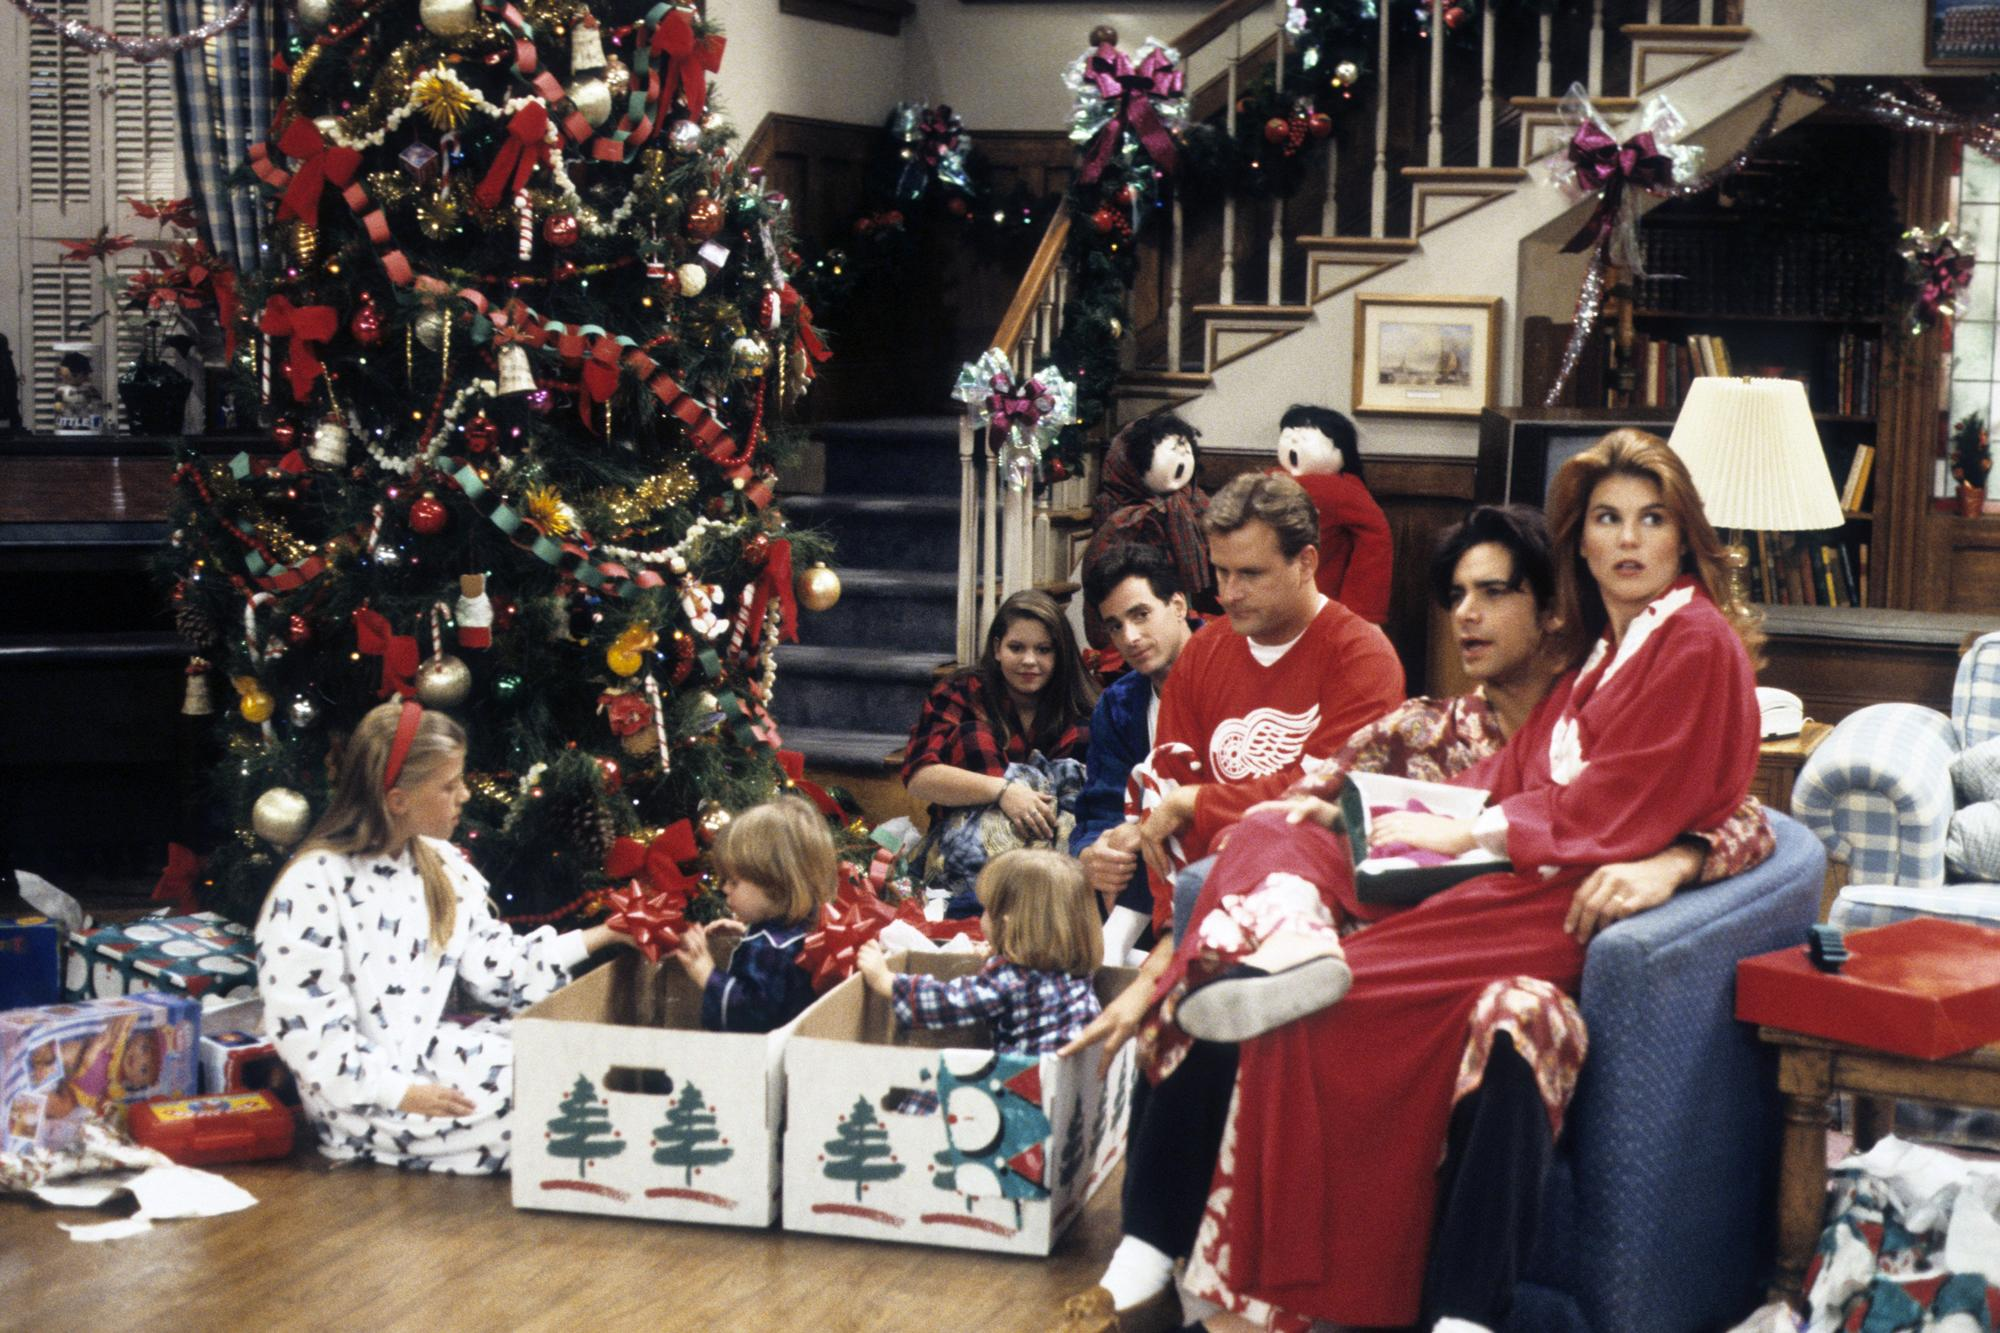 Full House Christmas Episodes.10 Holiday Tv Episodes We Still Love Watching Year Round